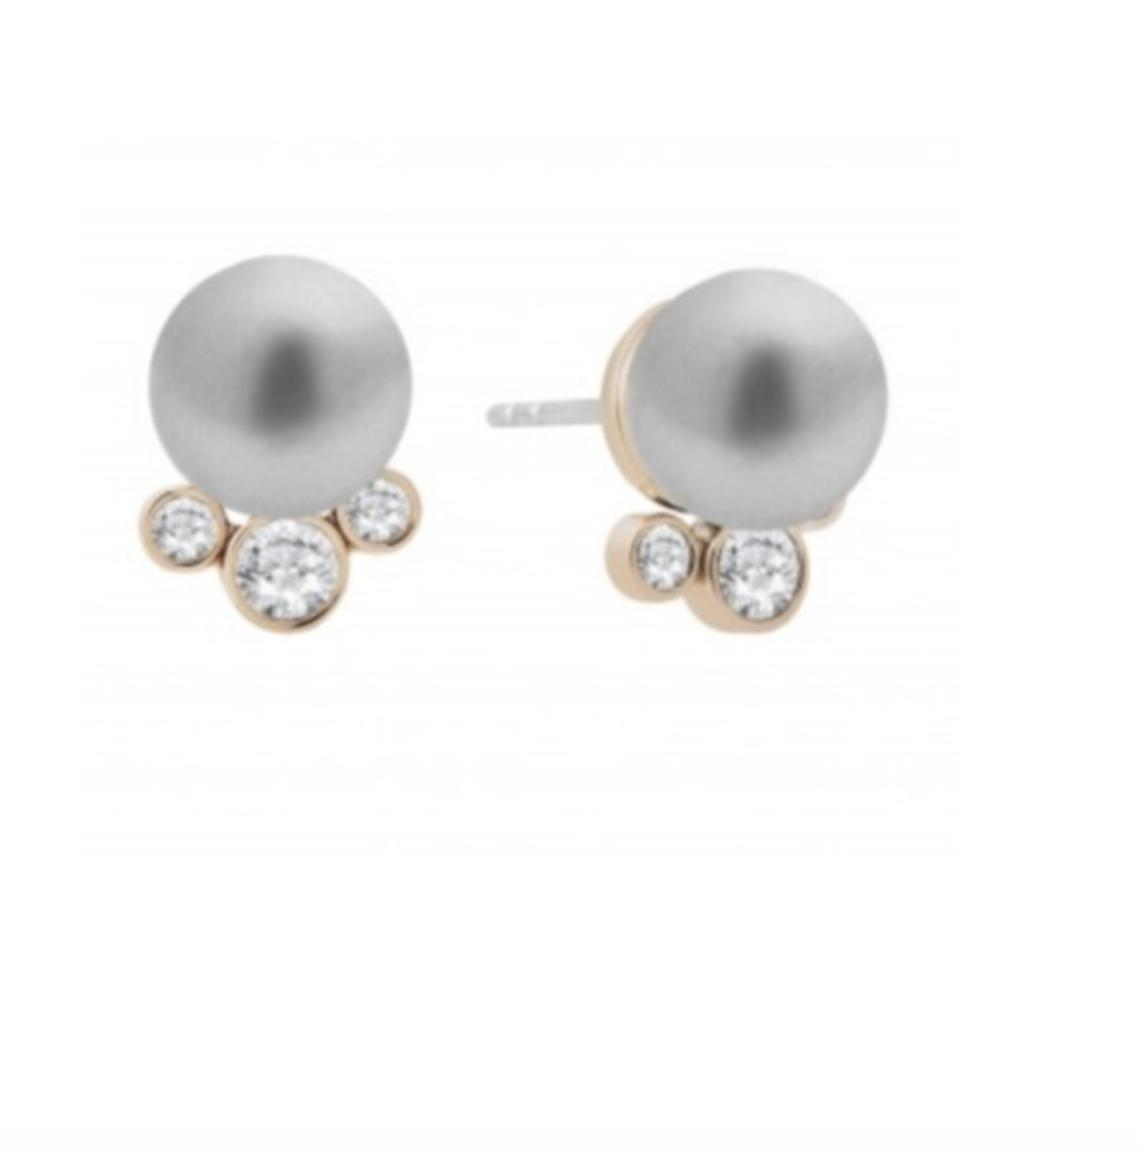 Michael Kors Grey Rose Gold Clear Modern Classic Pearl Pearl Stud